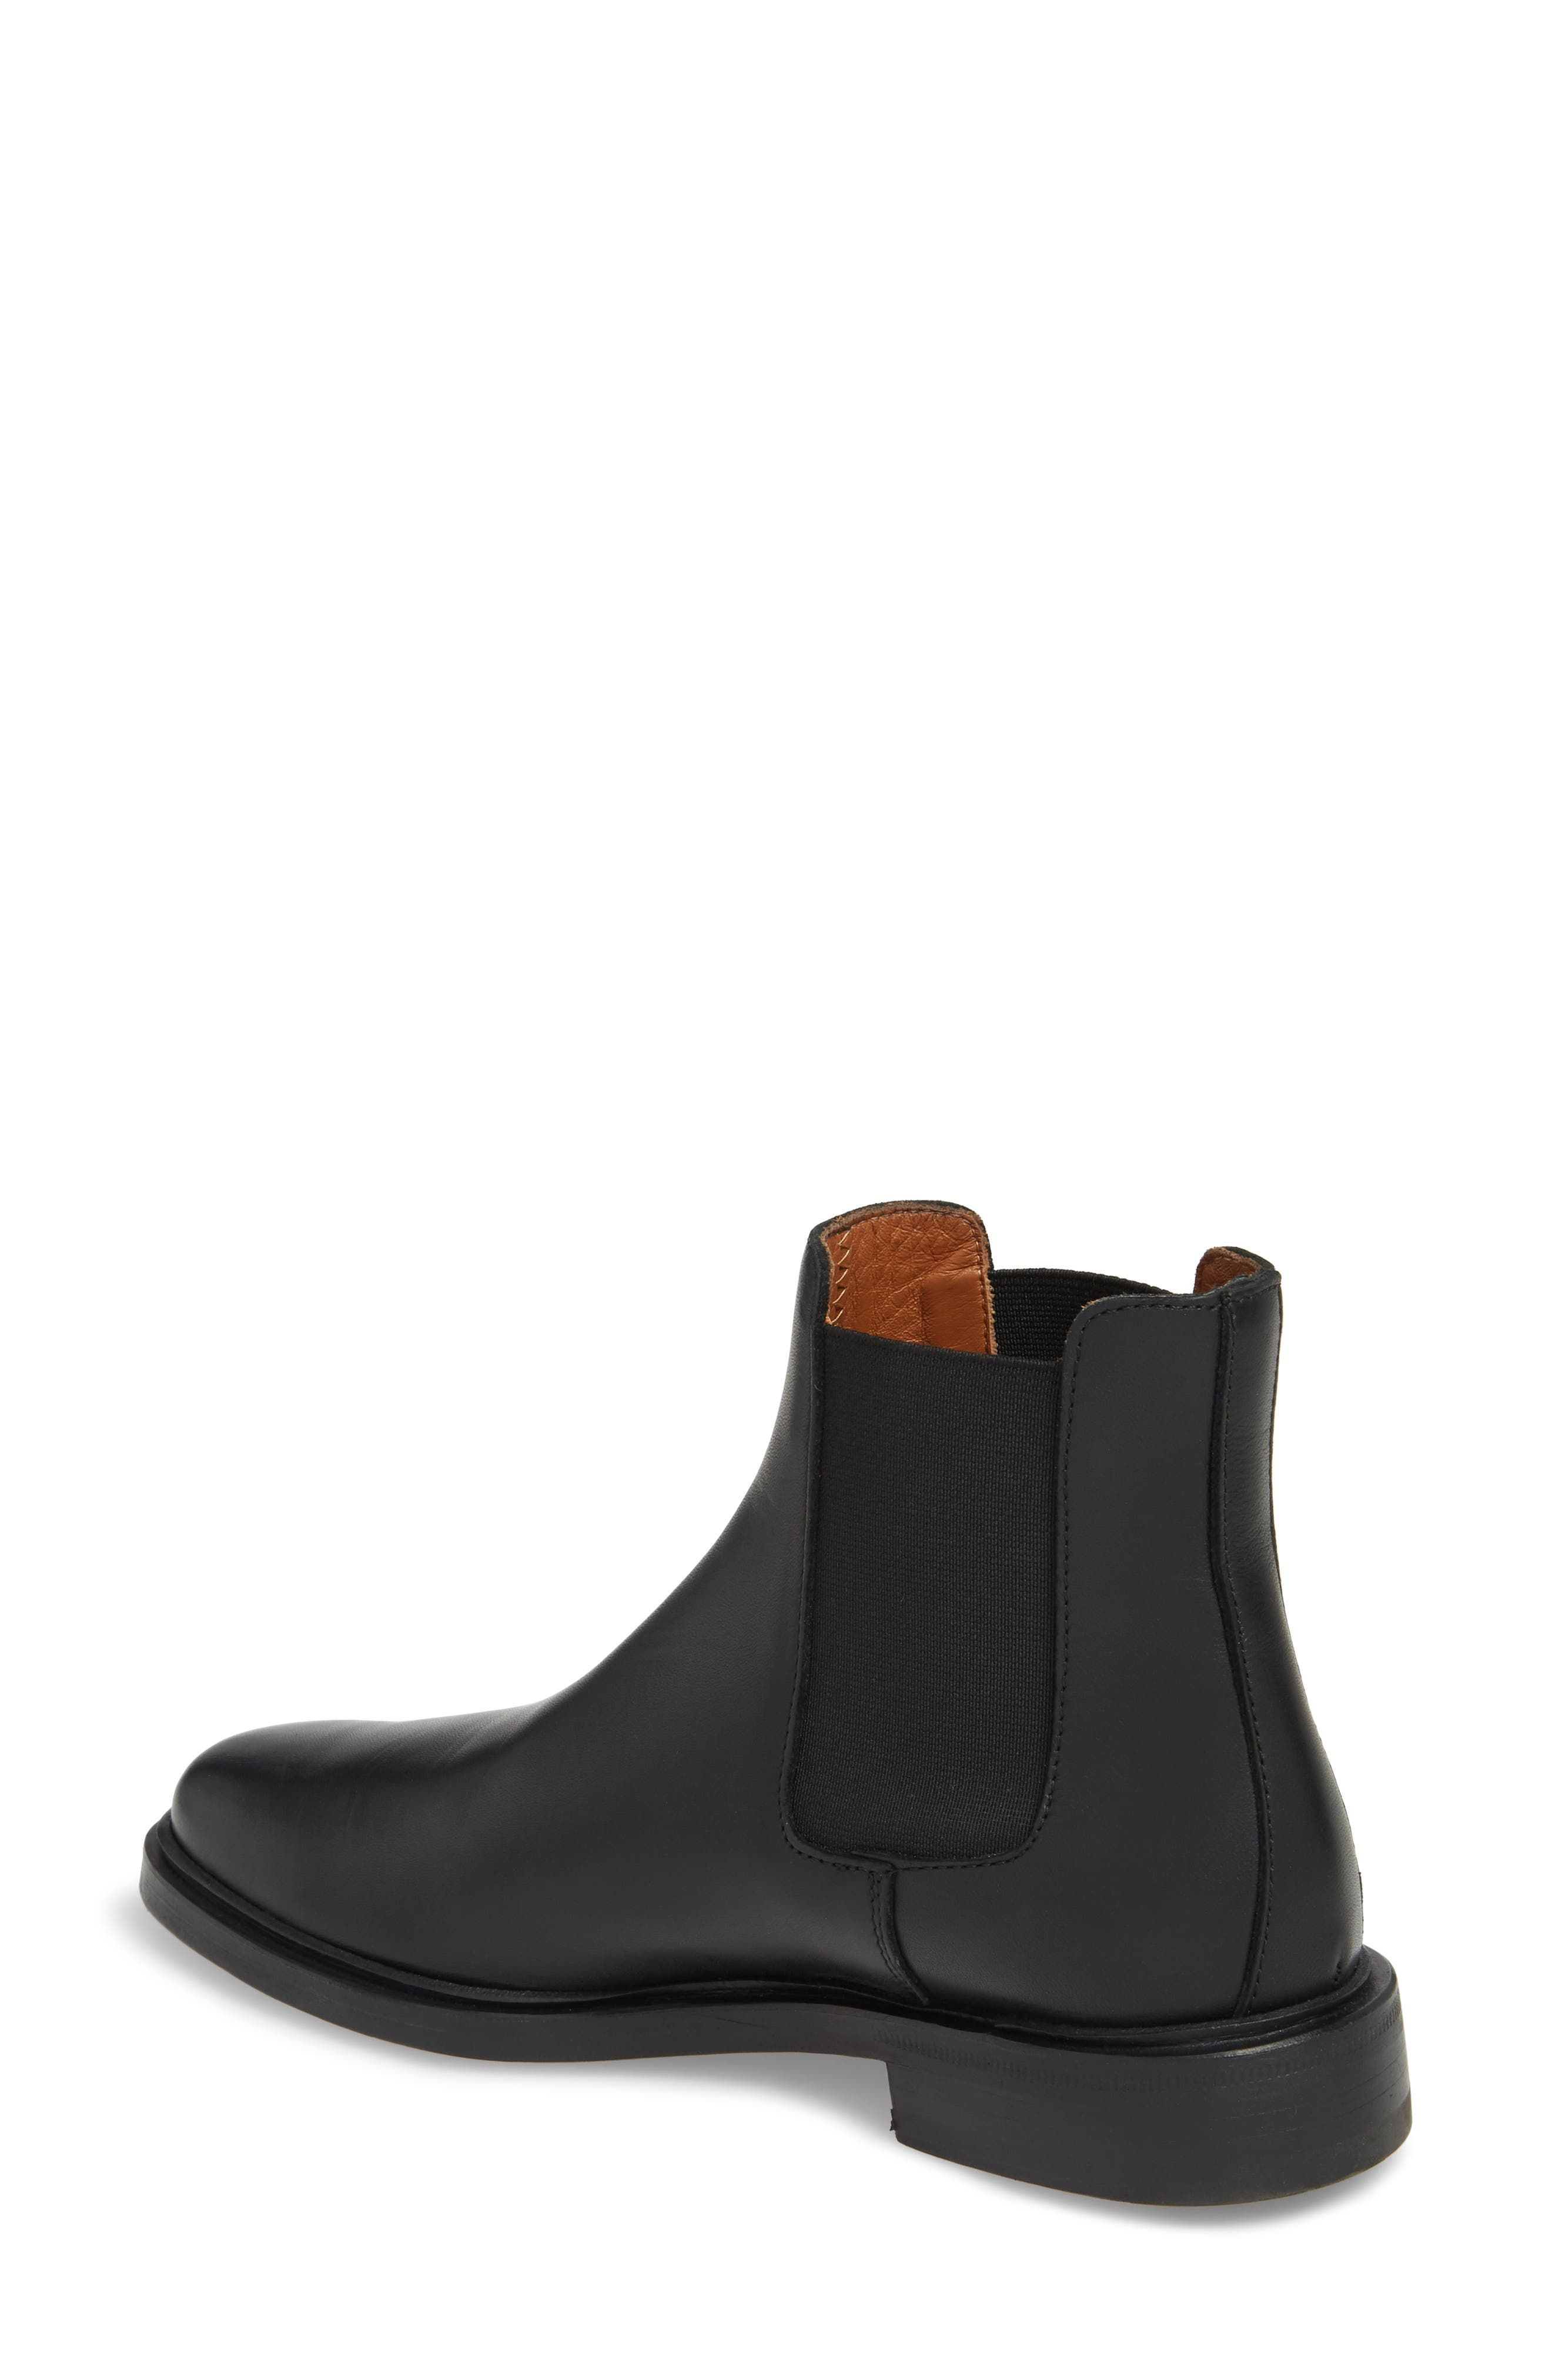 COMMON PROJECTS, Chelsea Boot, Alternate thumbnail 2, color, BLACK